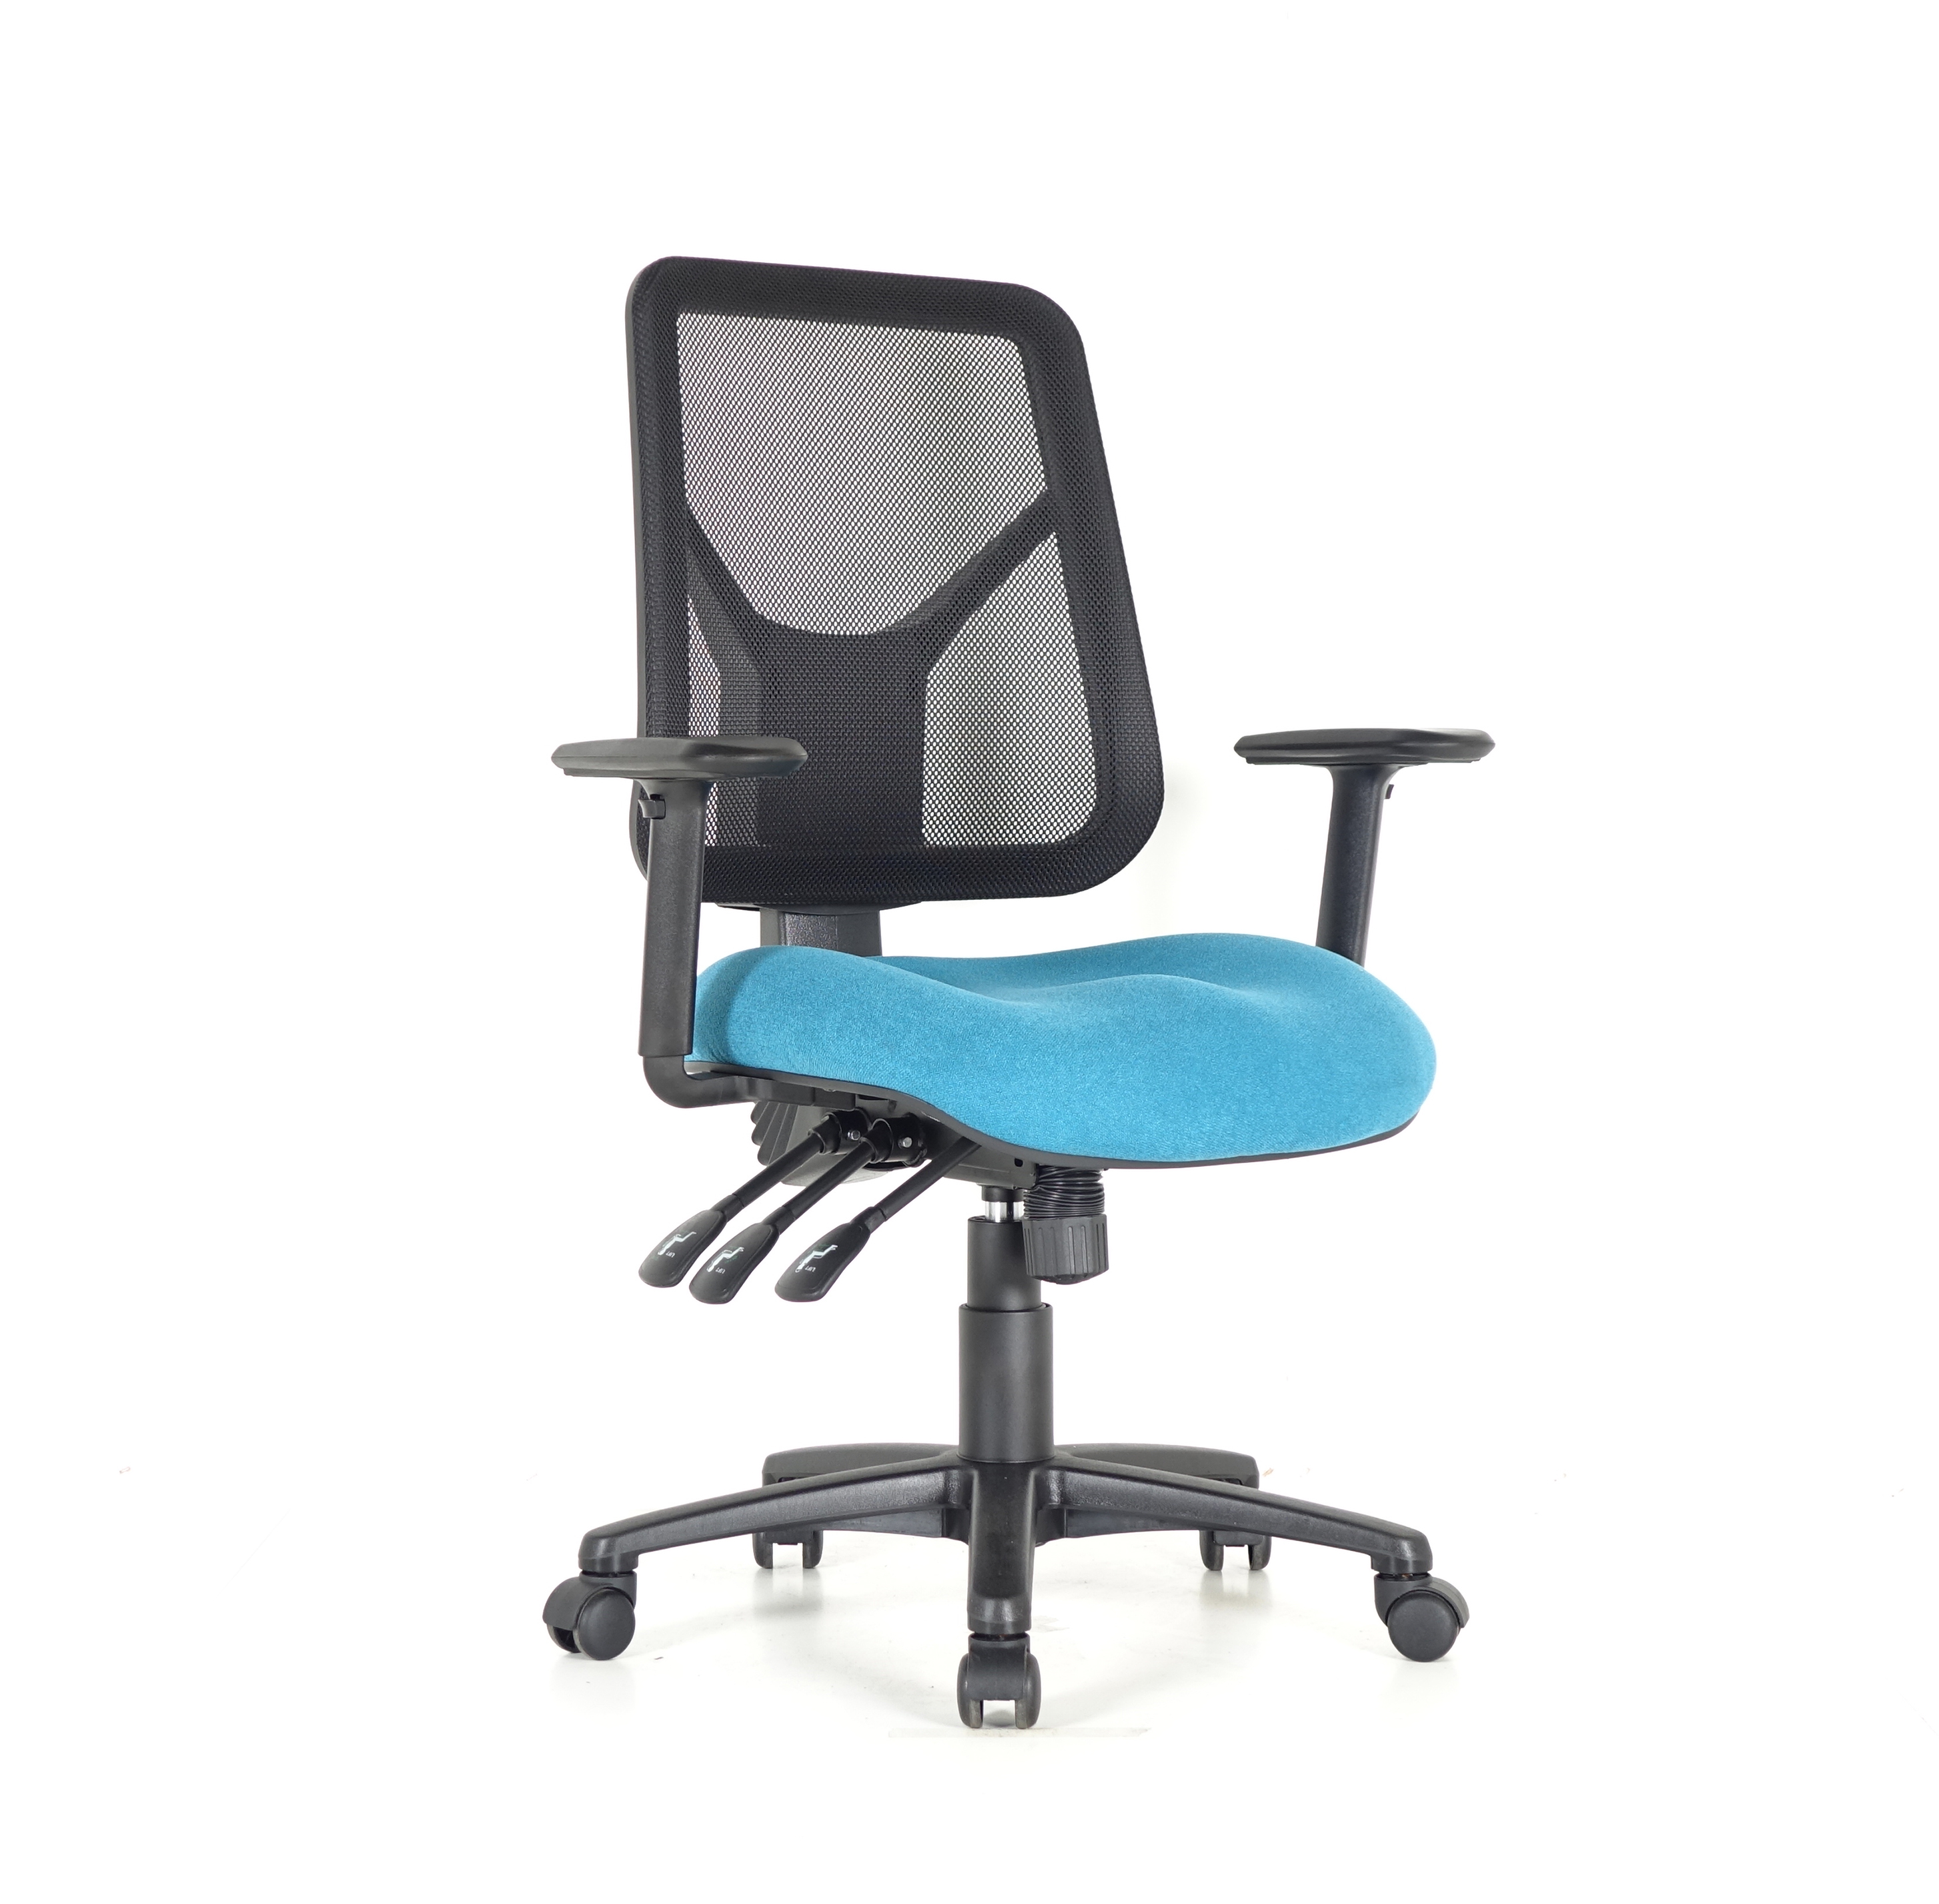 M80 High Back Clerical Chair